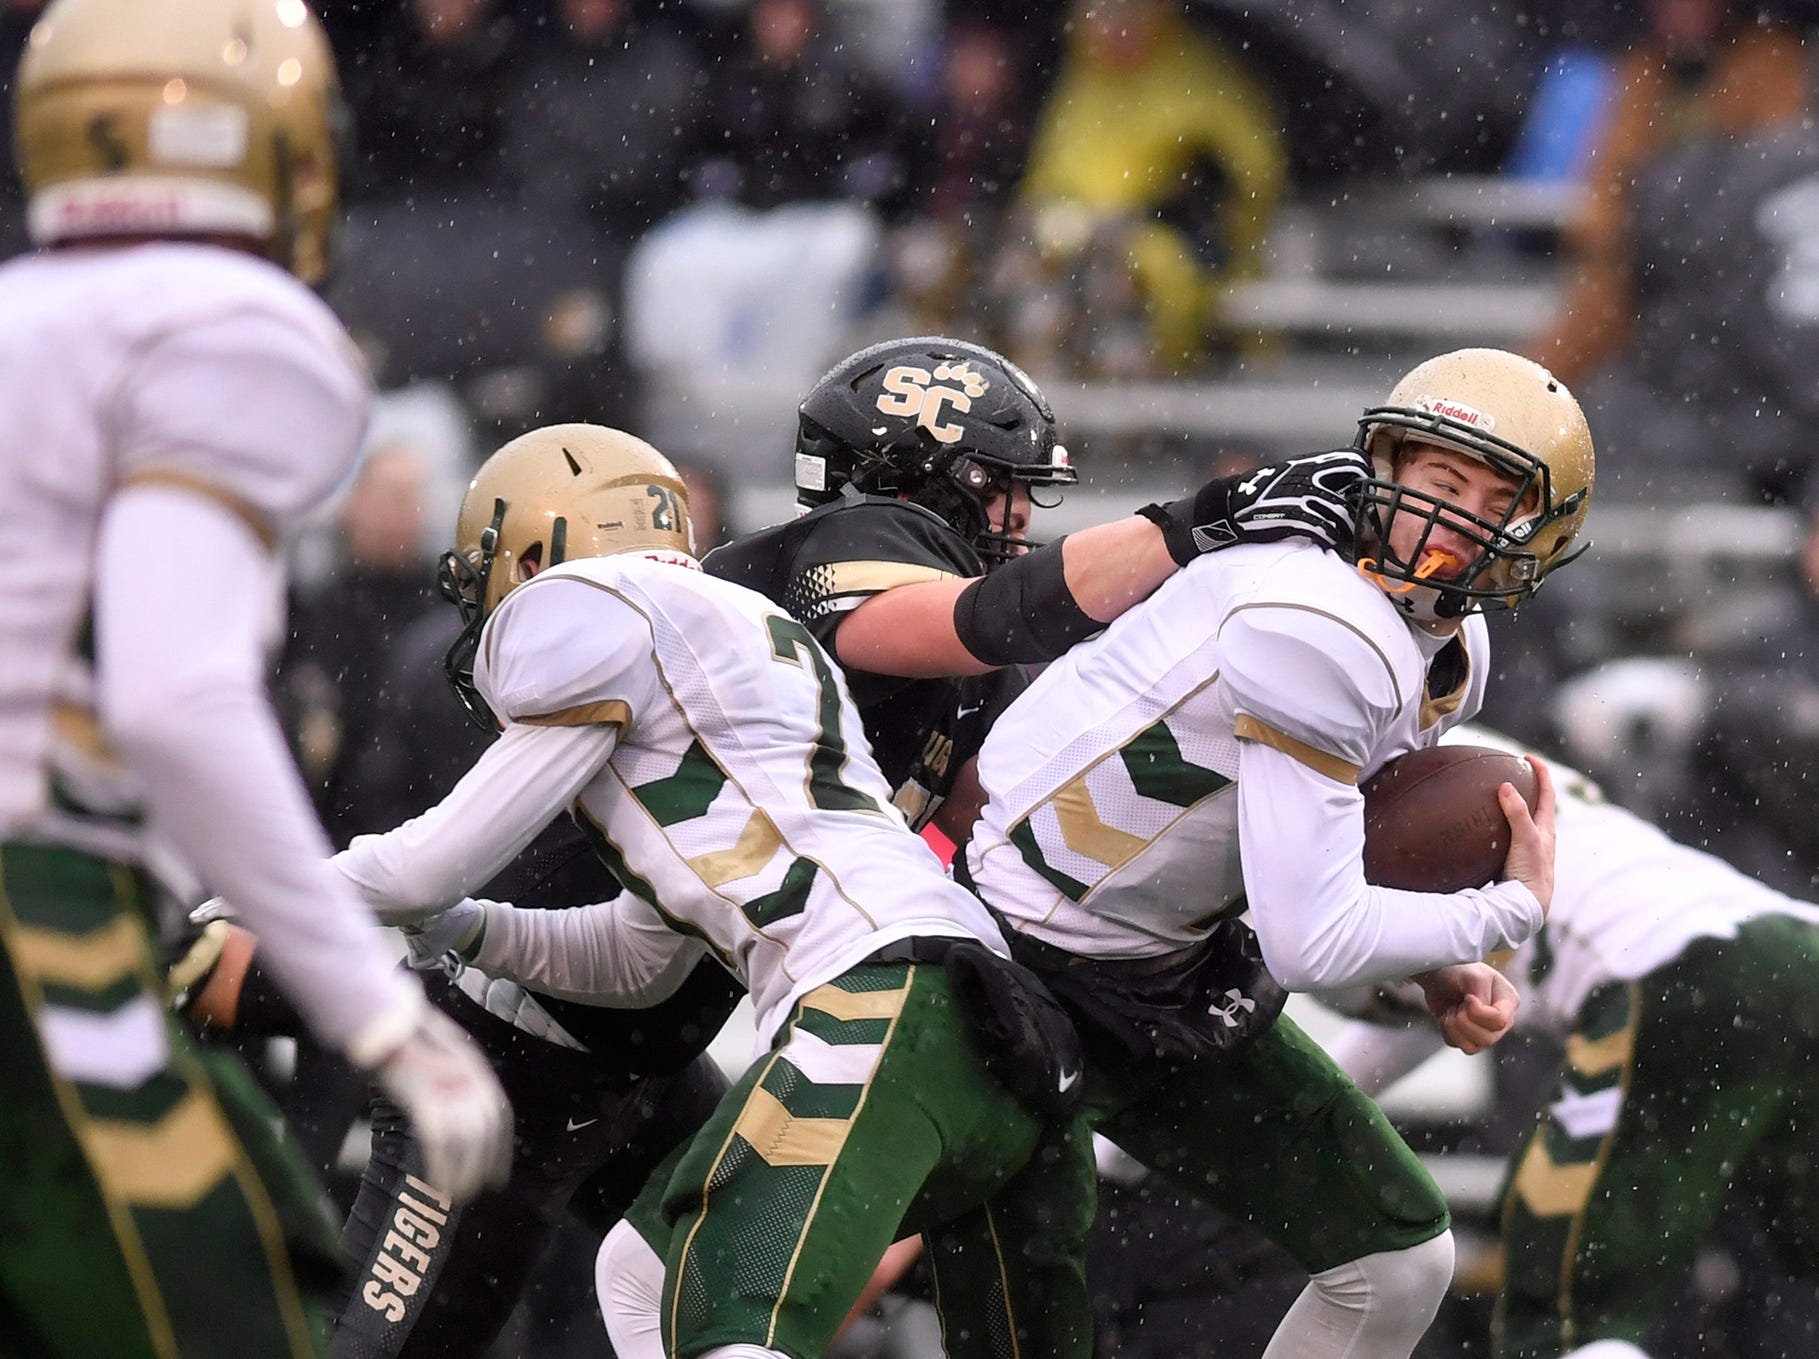 York Catholic quarterback Mitchell Galentine is facemasked by Payton Pursel of Southern Columbia during the PIAA Class 2-A quarterfinal football game in Shamokin, Saturday, November 24, 2018. 